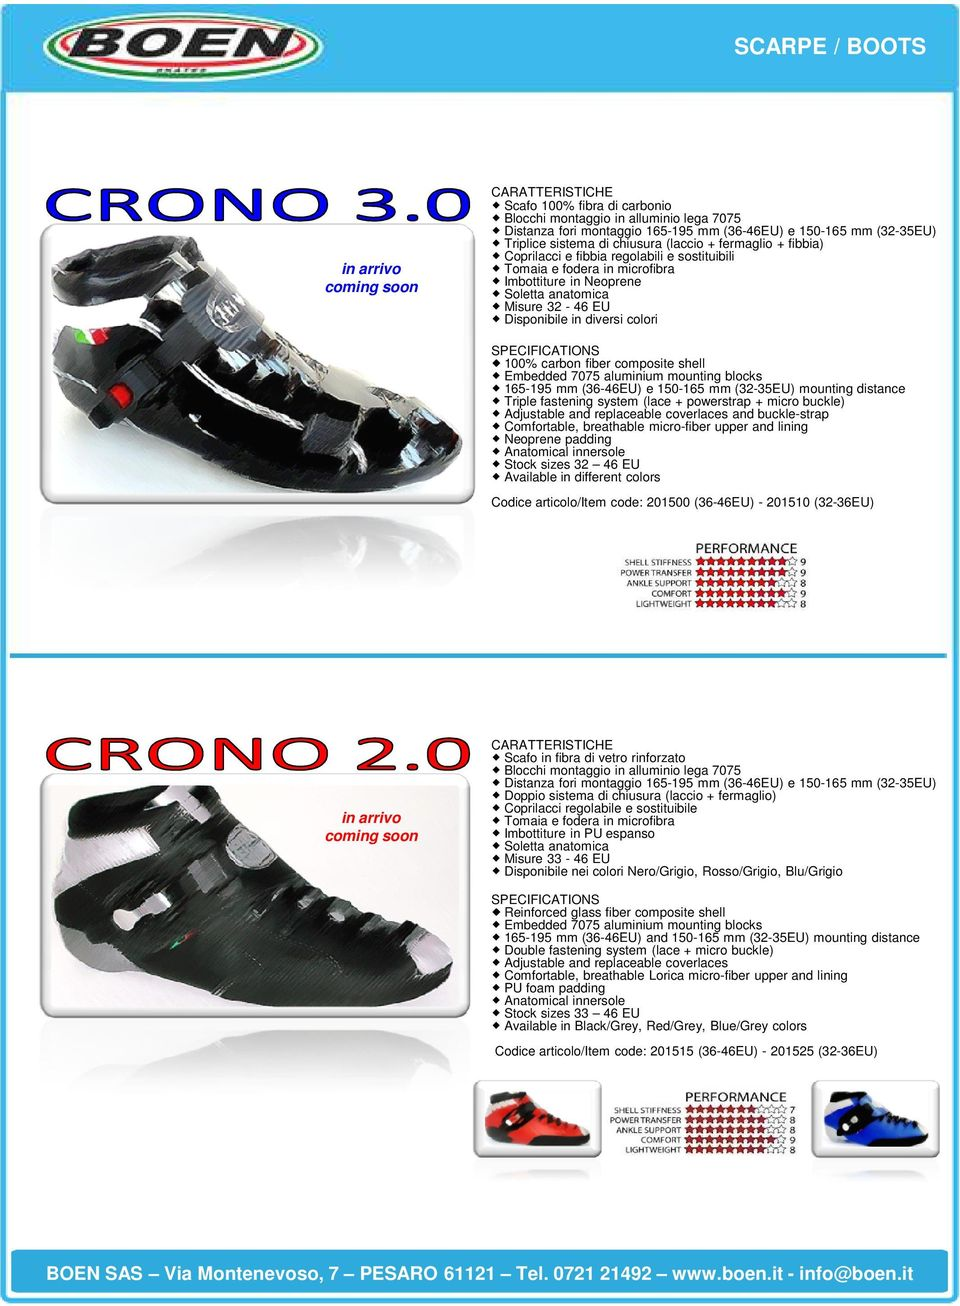 colori 100% carbon fiber composite shell Embedded 7075 aluminium mounting blocks 165-195 mm (36-46EU) e 150-165 mm (32-35EU) mounting distance Triple fastening system (lace + powerstrap + micro